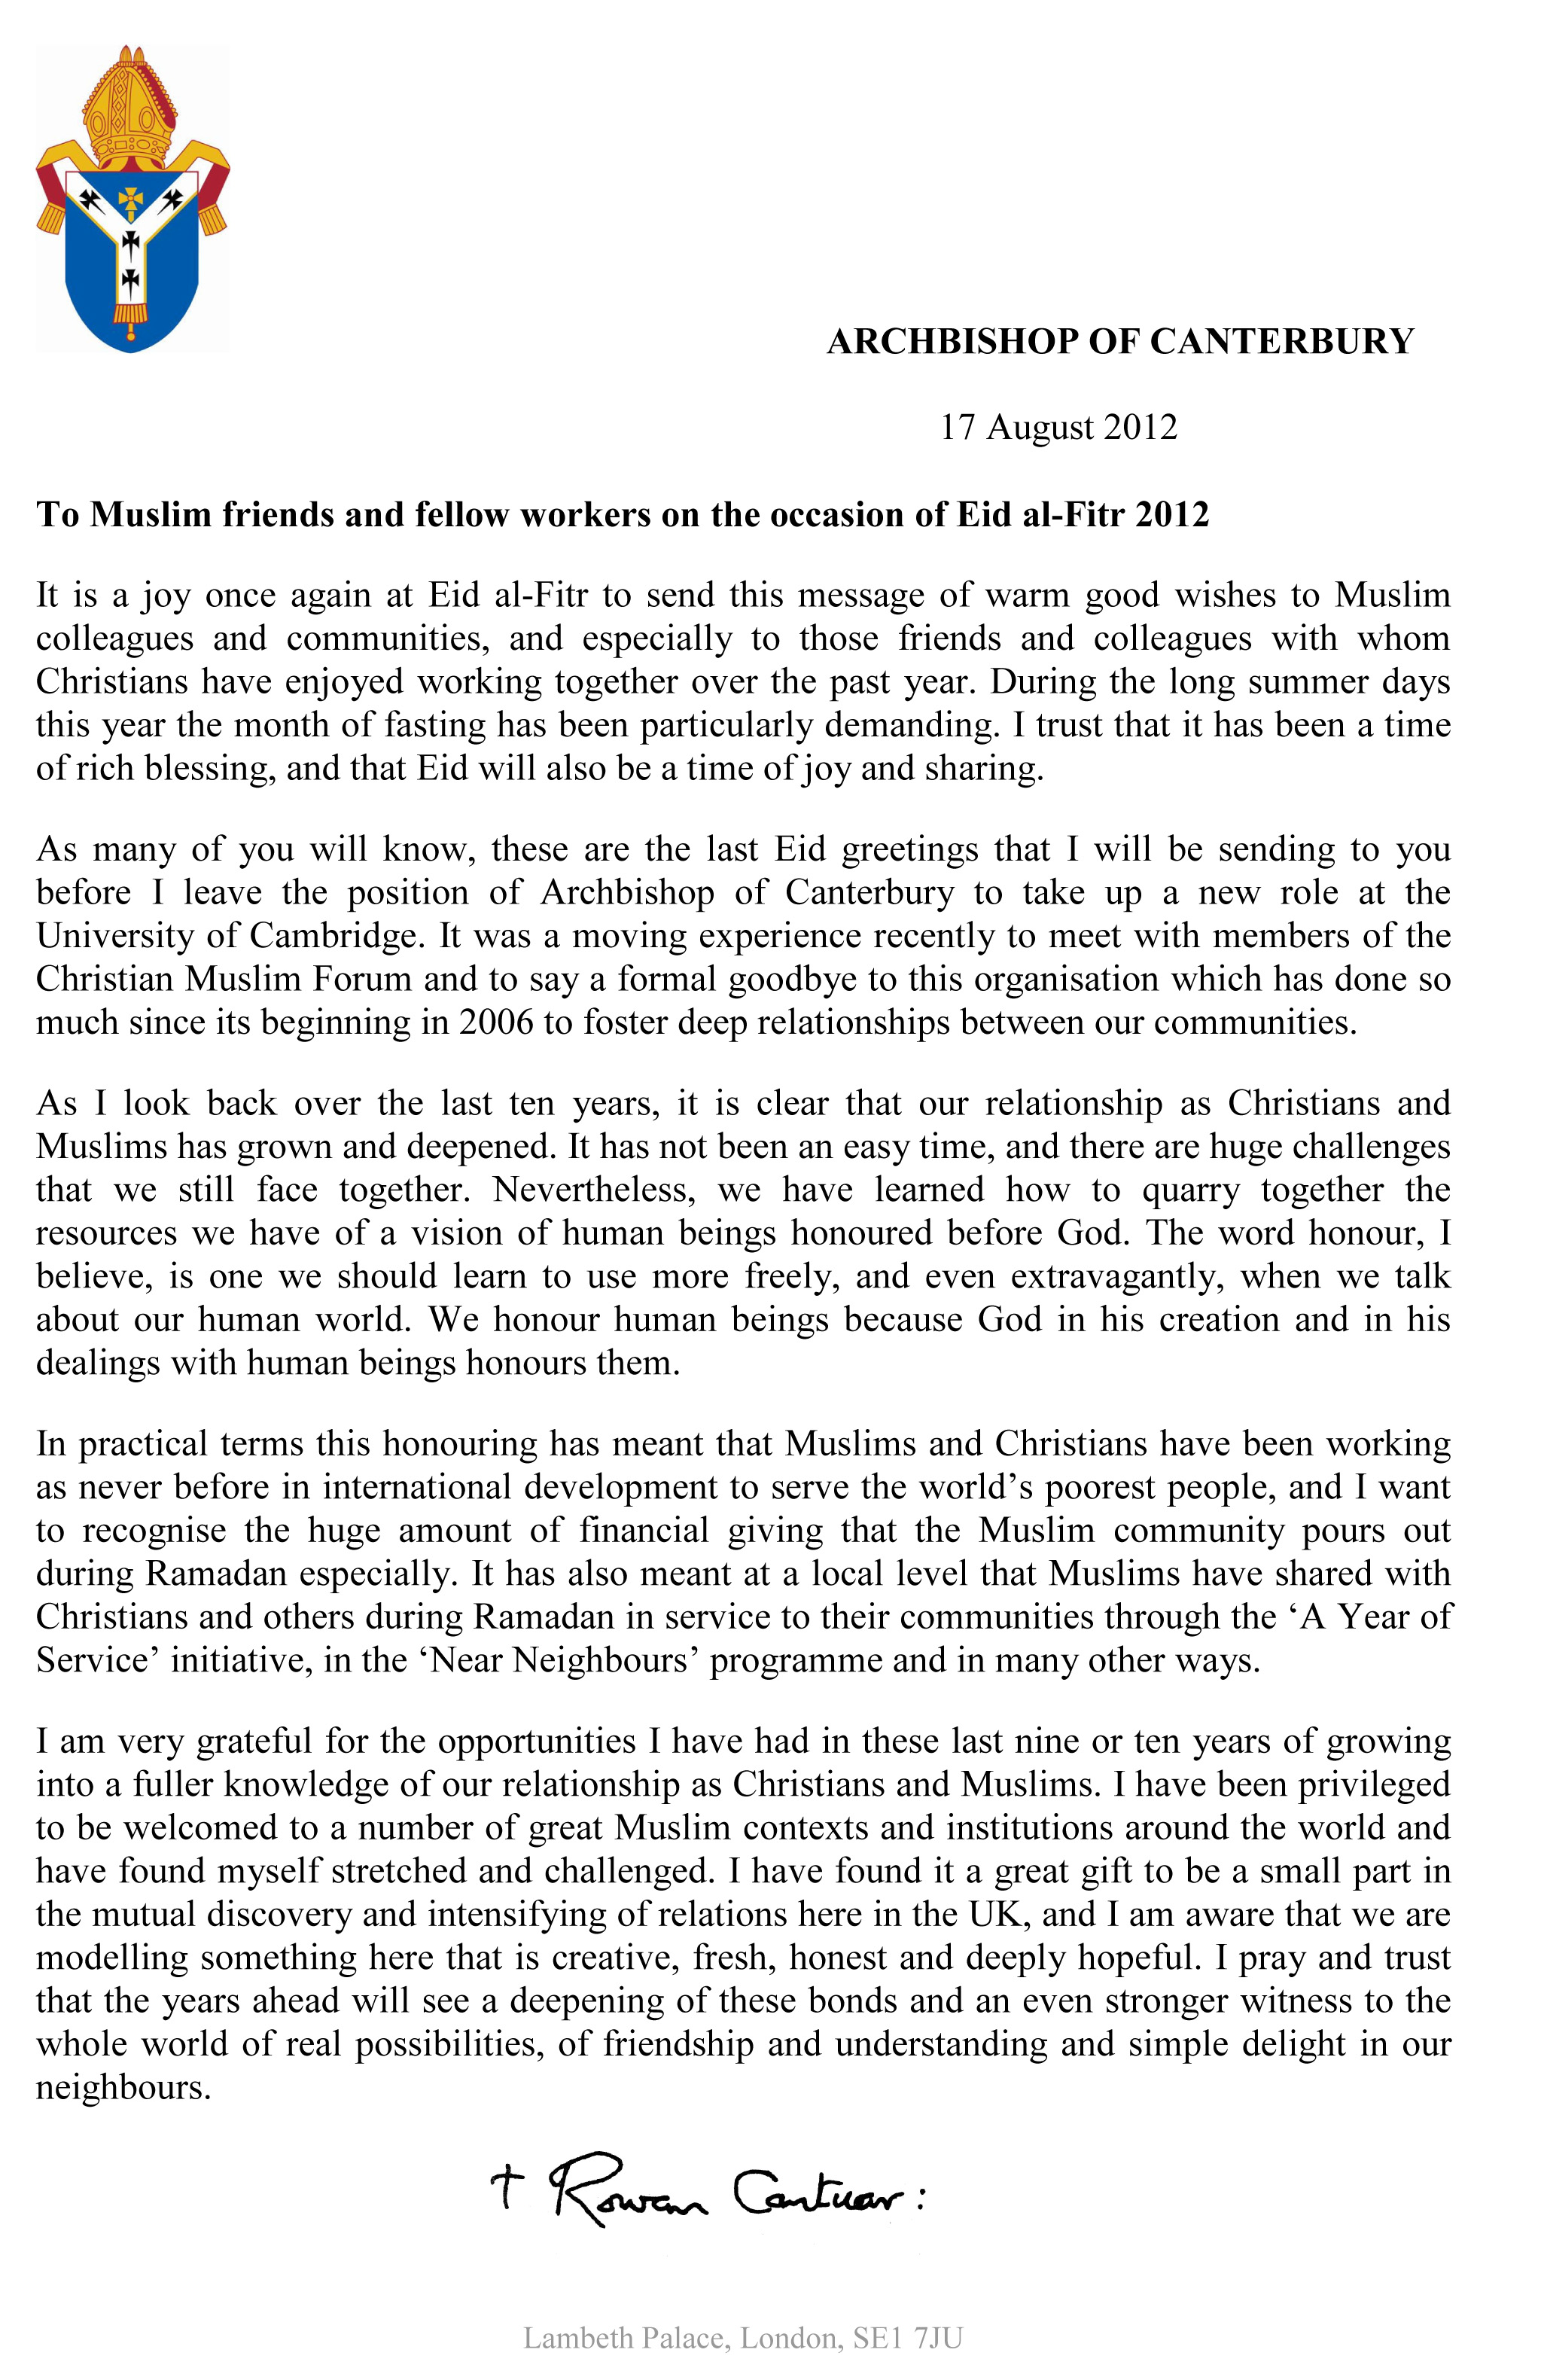 Download Letter Eid Al-Fitr Greeting - eid-al-fitr-2012-message-from-the-archbishop-of-canterbury  Pictures_576063 .jpg?w\u003d662